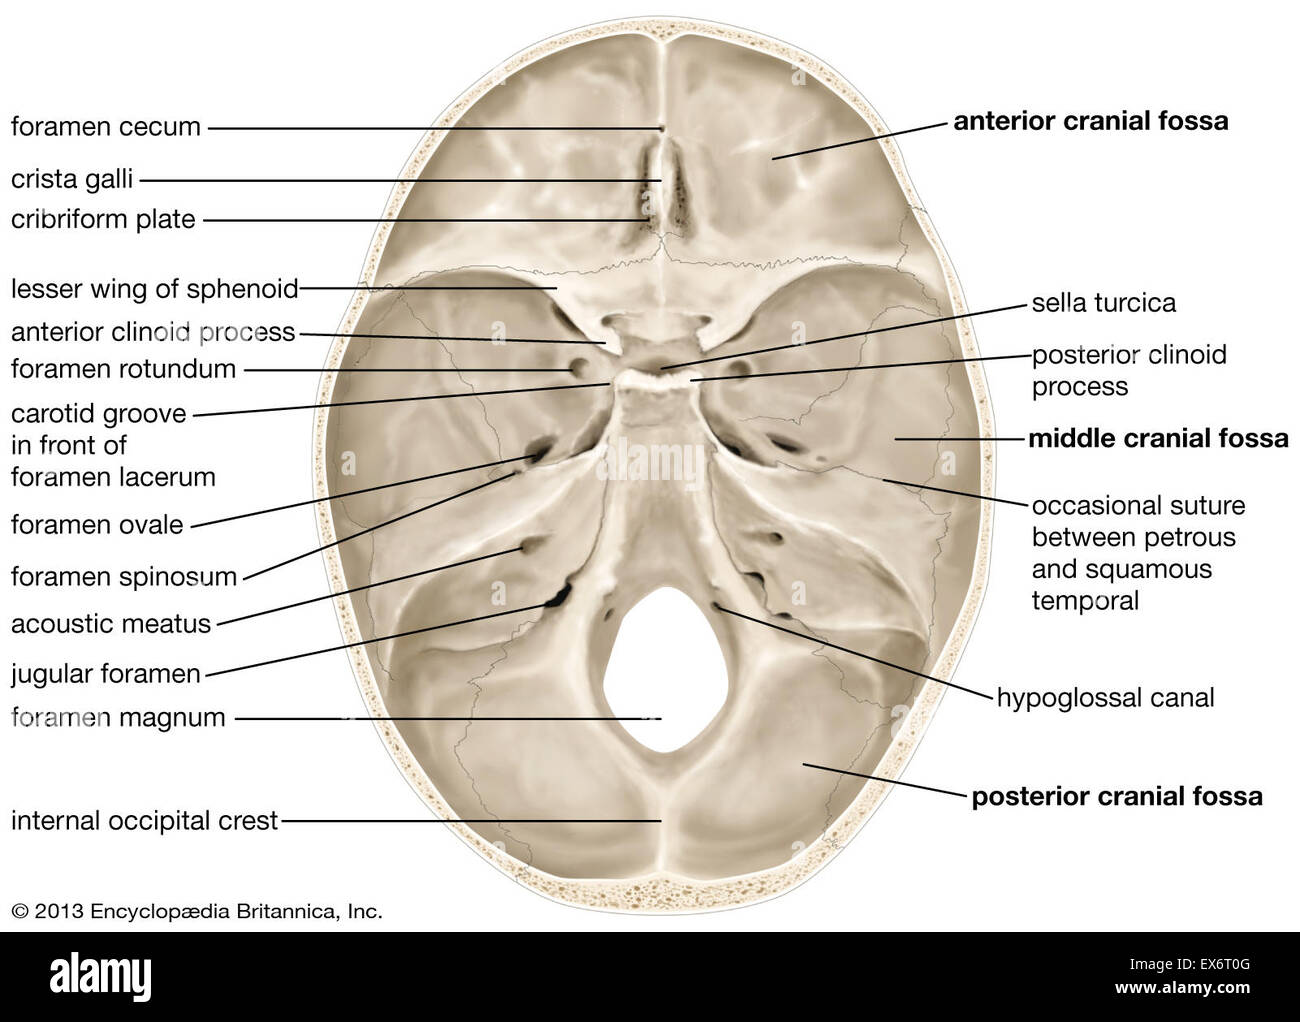 the human brain in photographs and diagrams diagram labeled enchanted learning internal surface of skull stock photo: 84973072 - alamy